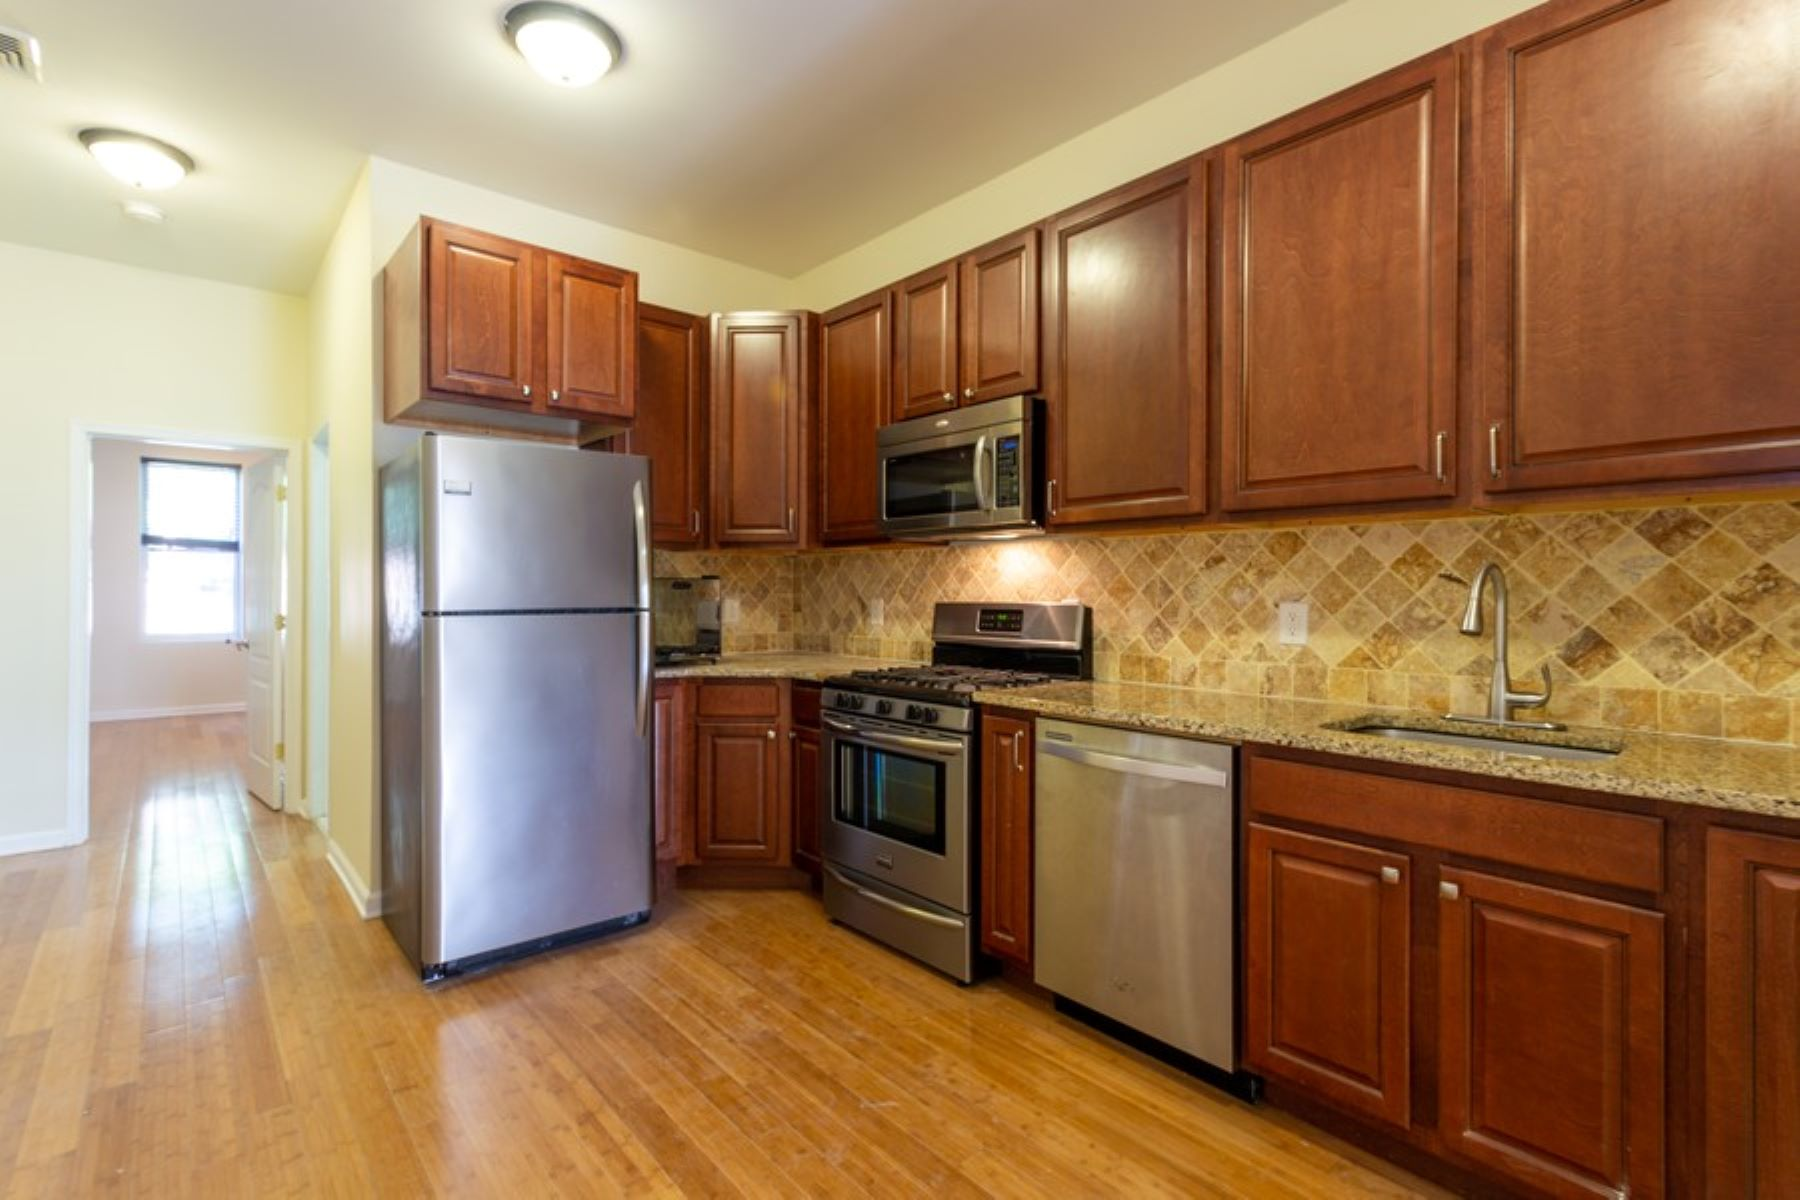 Condominiums for Rent at This lovely condo in a desirable location of Jersey City Heights is a must see! 249 New York Avenue, Unit 302, Jersey City, New Jersey 07307 United States